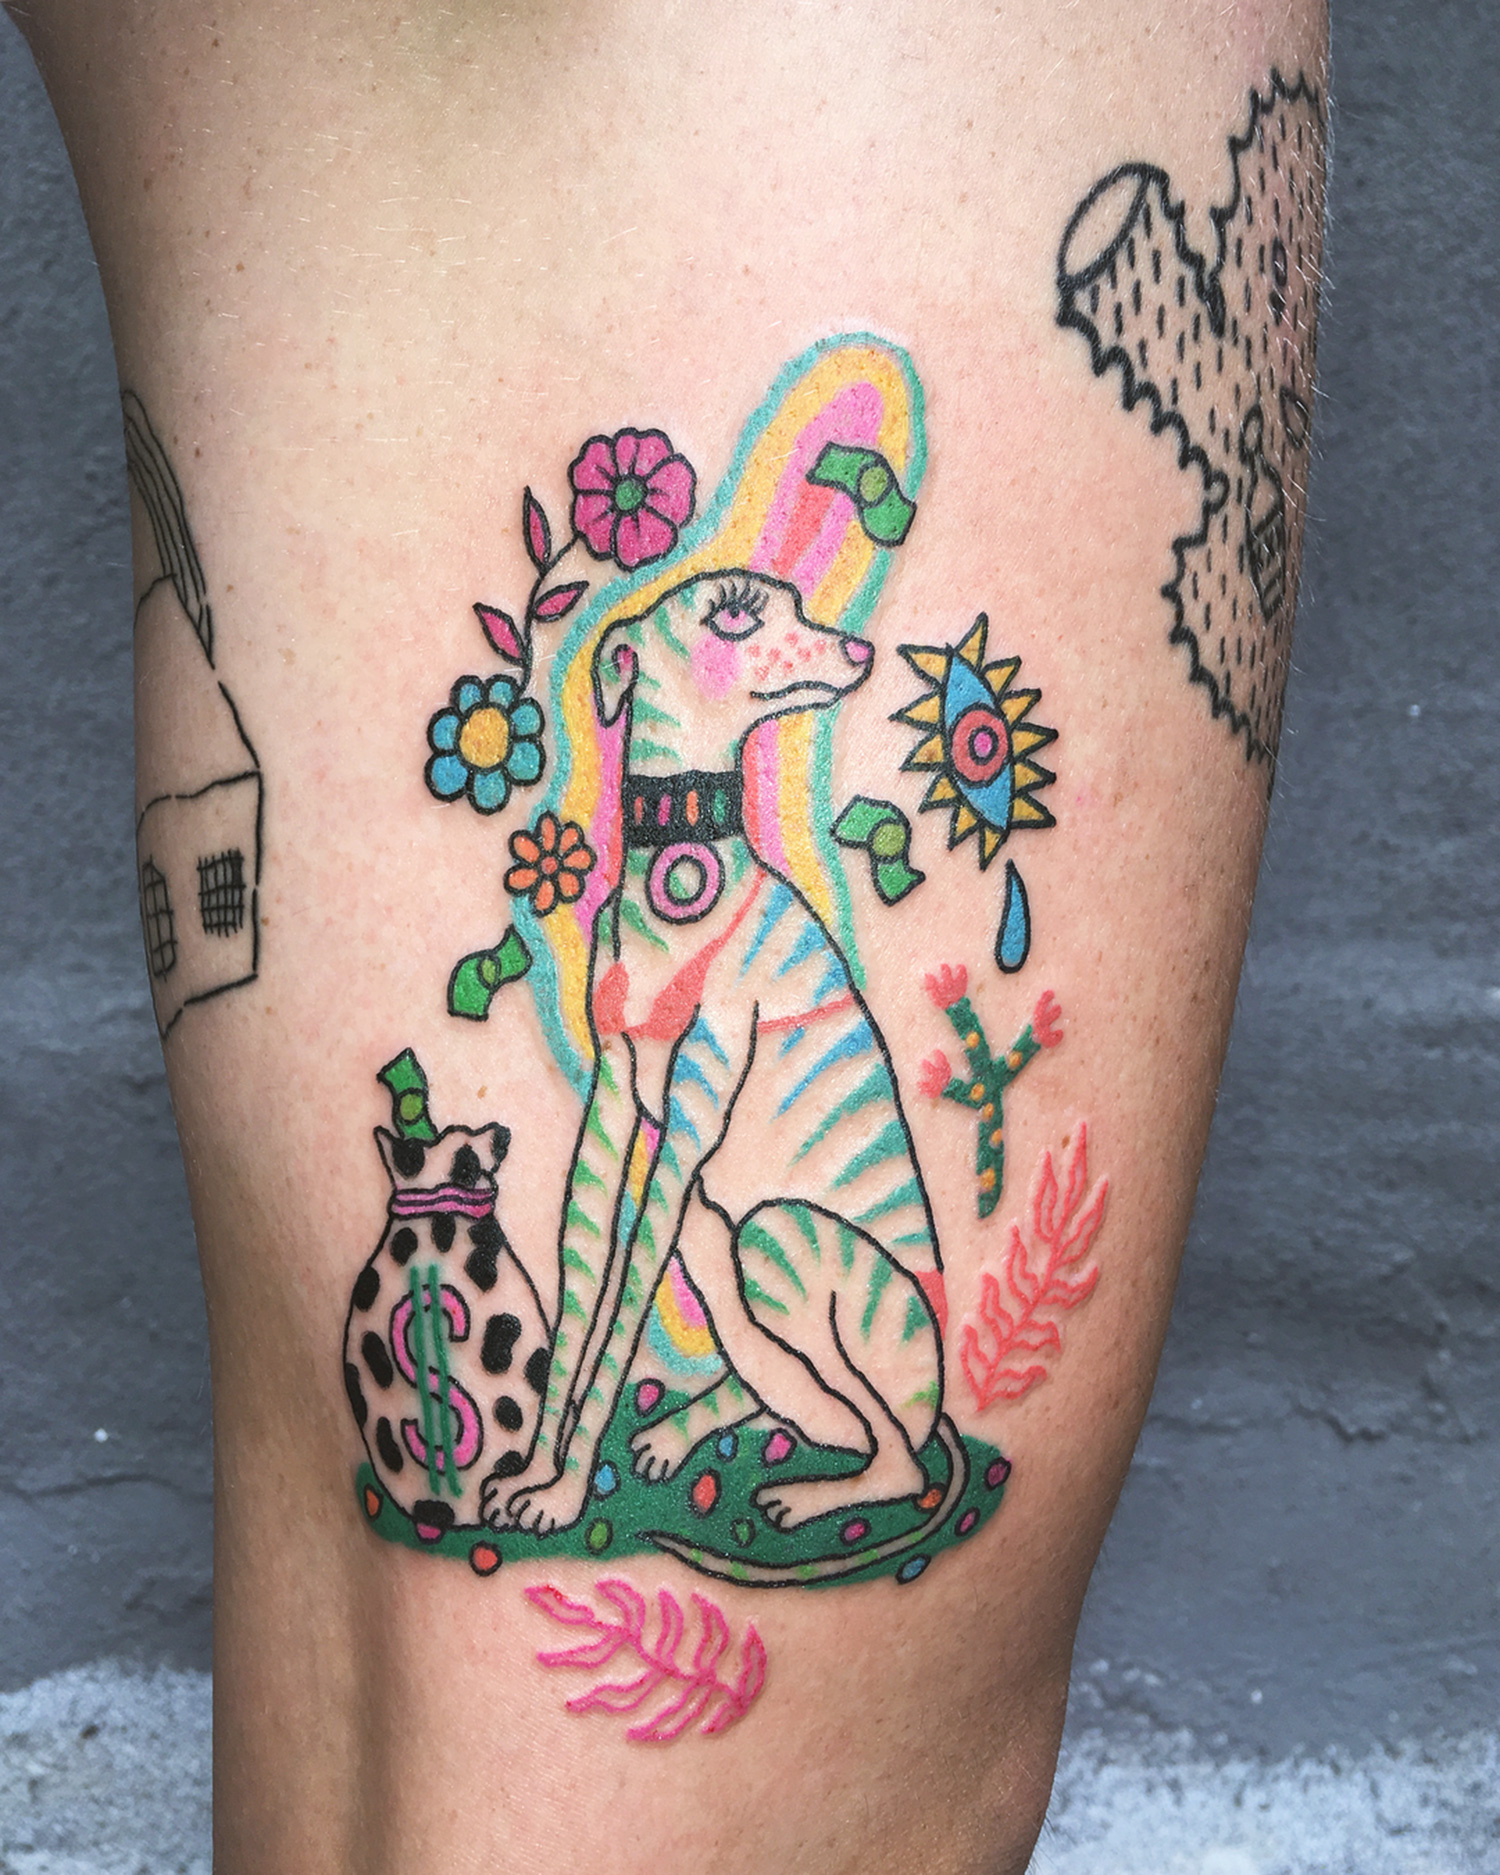 Charline Bataille - stripper dog tattoo